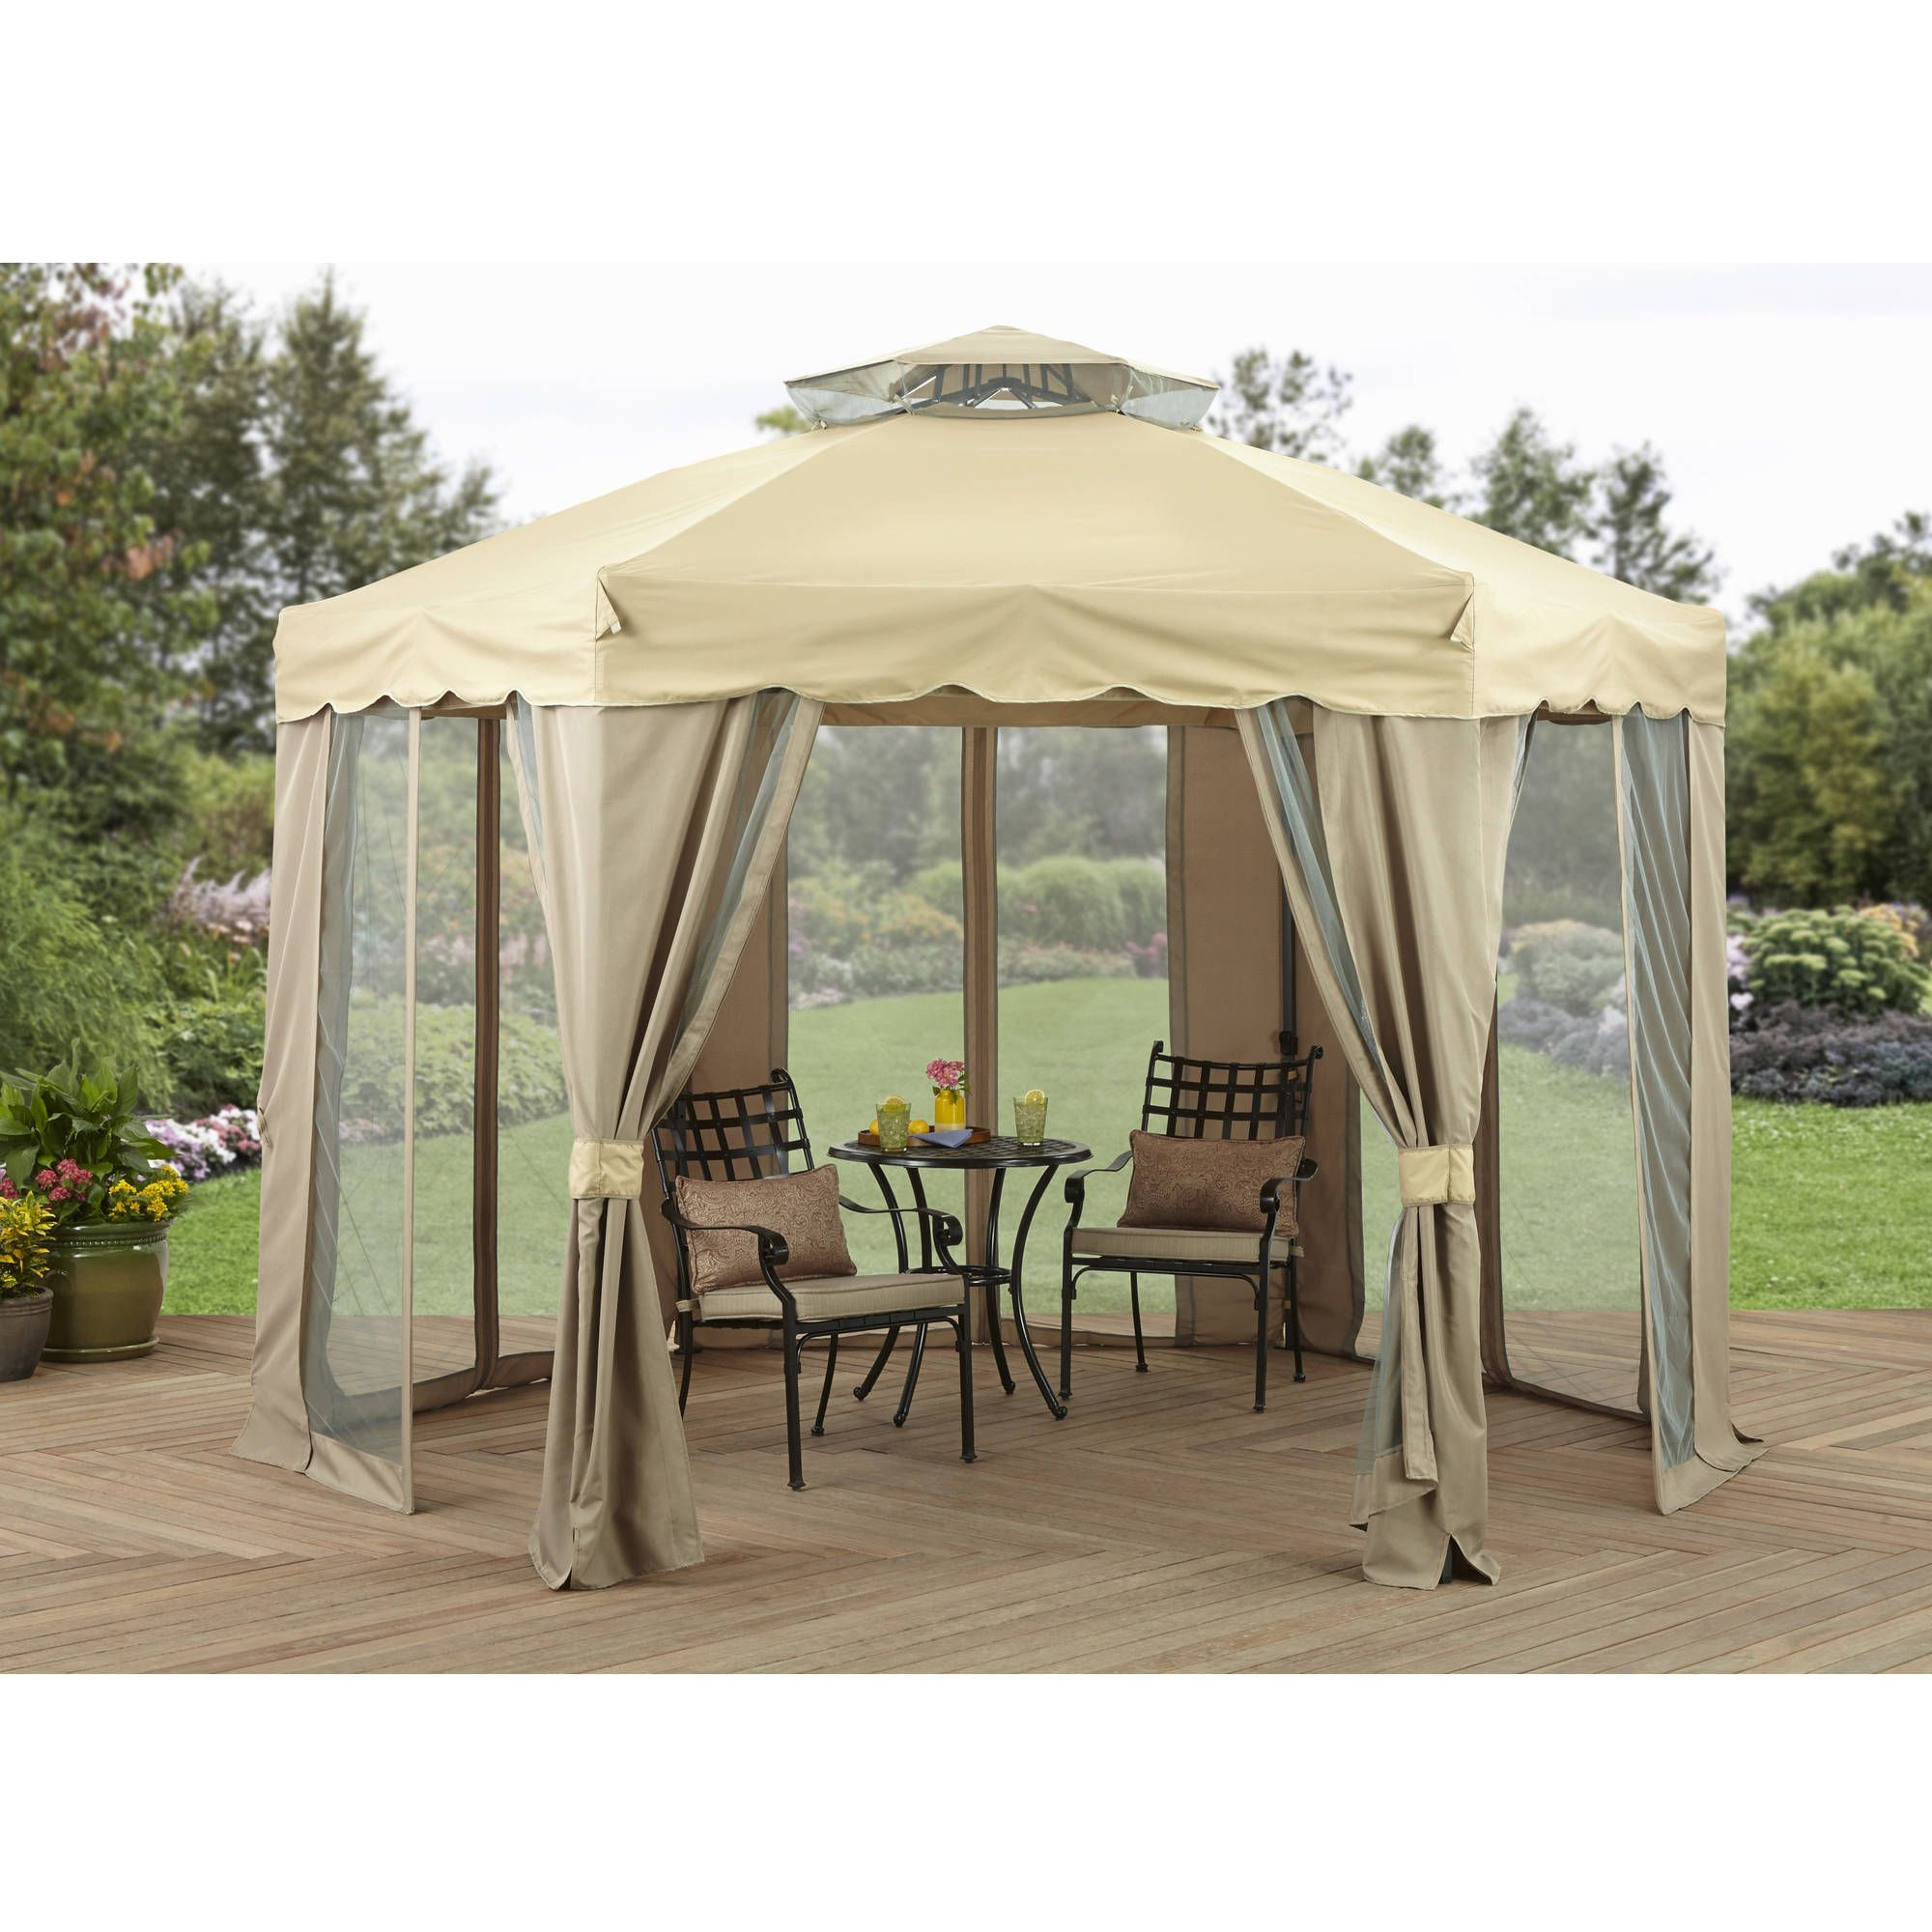 plans this attachment canopy awesome diy interesting charming of an enclosed patio gallery mastersunr ideas gazebo